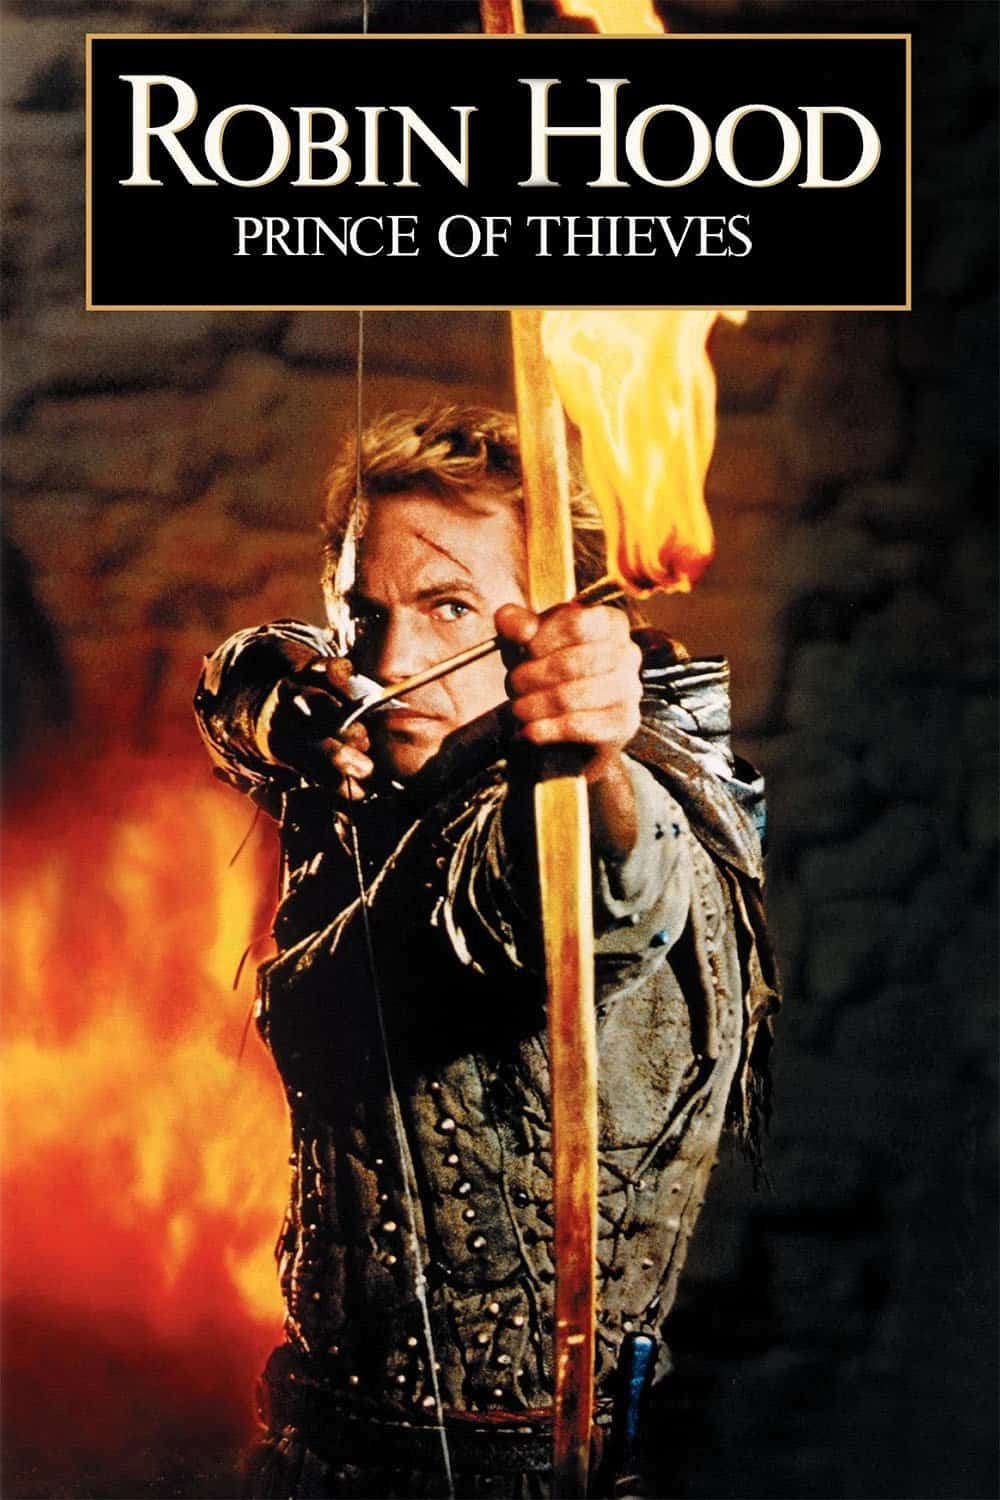 Robin Hood: Prince of Thieves, 1991